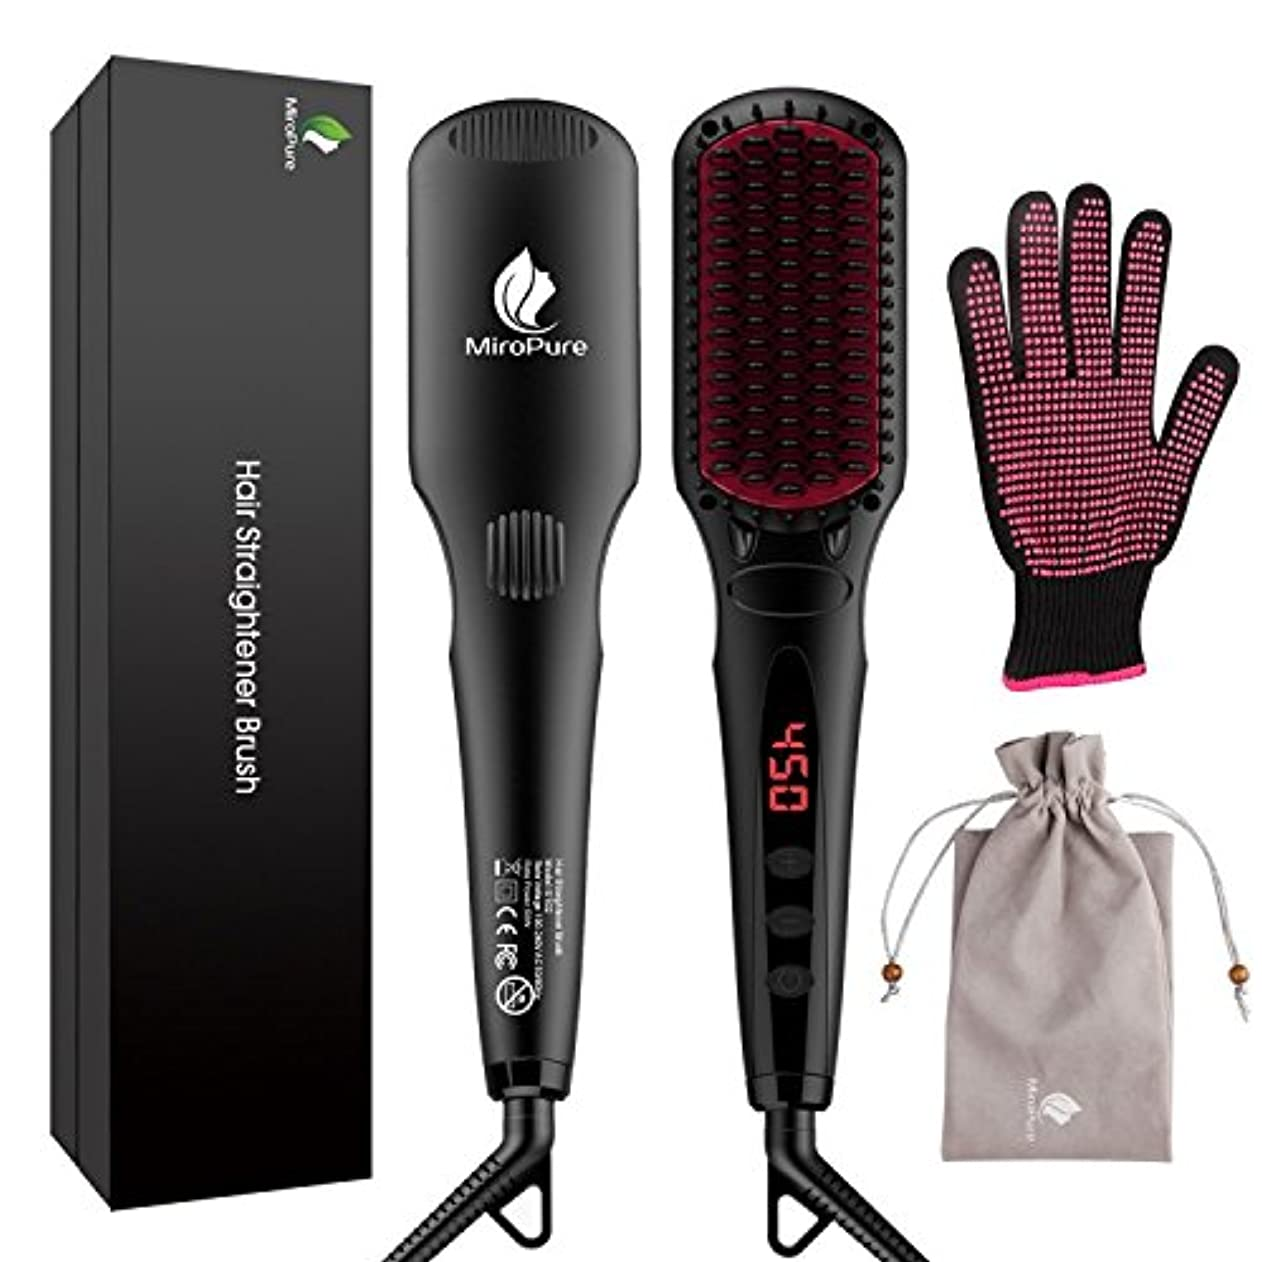 スパン音声ロイヤリティMiroPure 2 in 1 Ionic Hair Straightener Brush ヘアストレートヘアブラシ with Heat Resistant Glove and Temperature Lock Function...